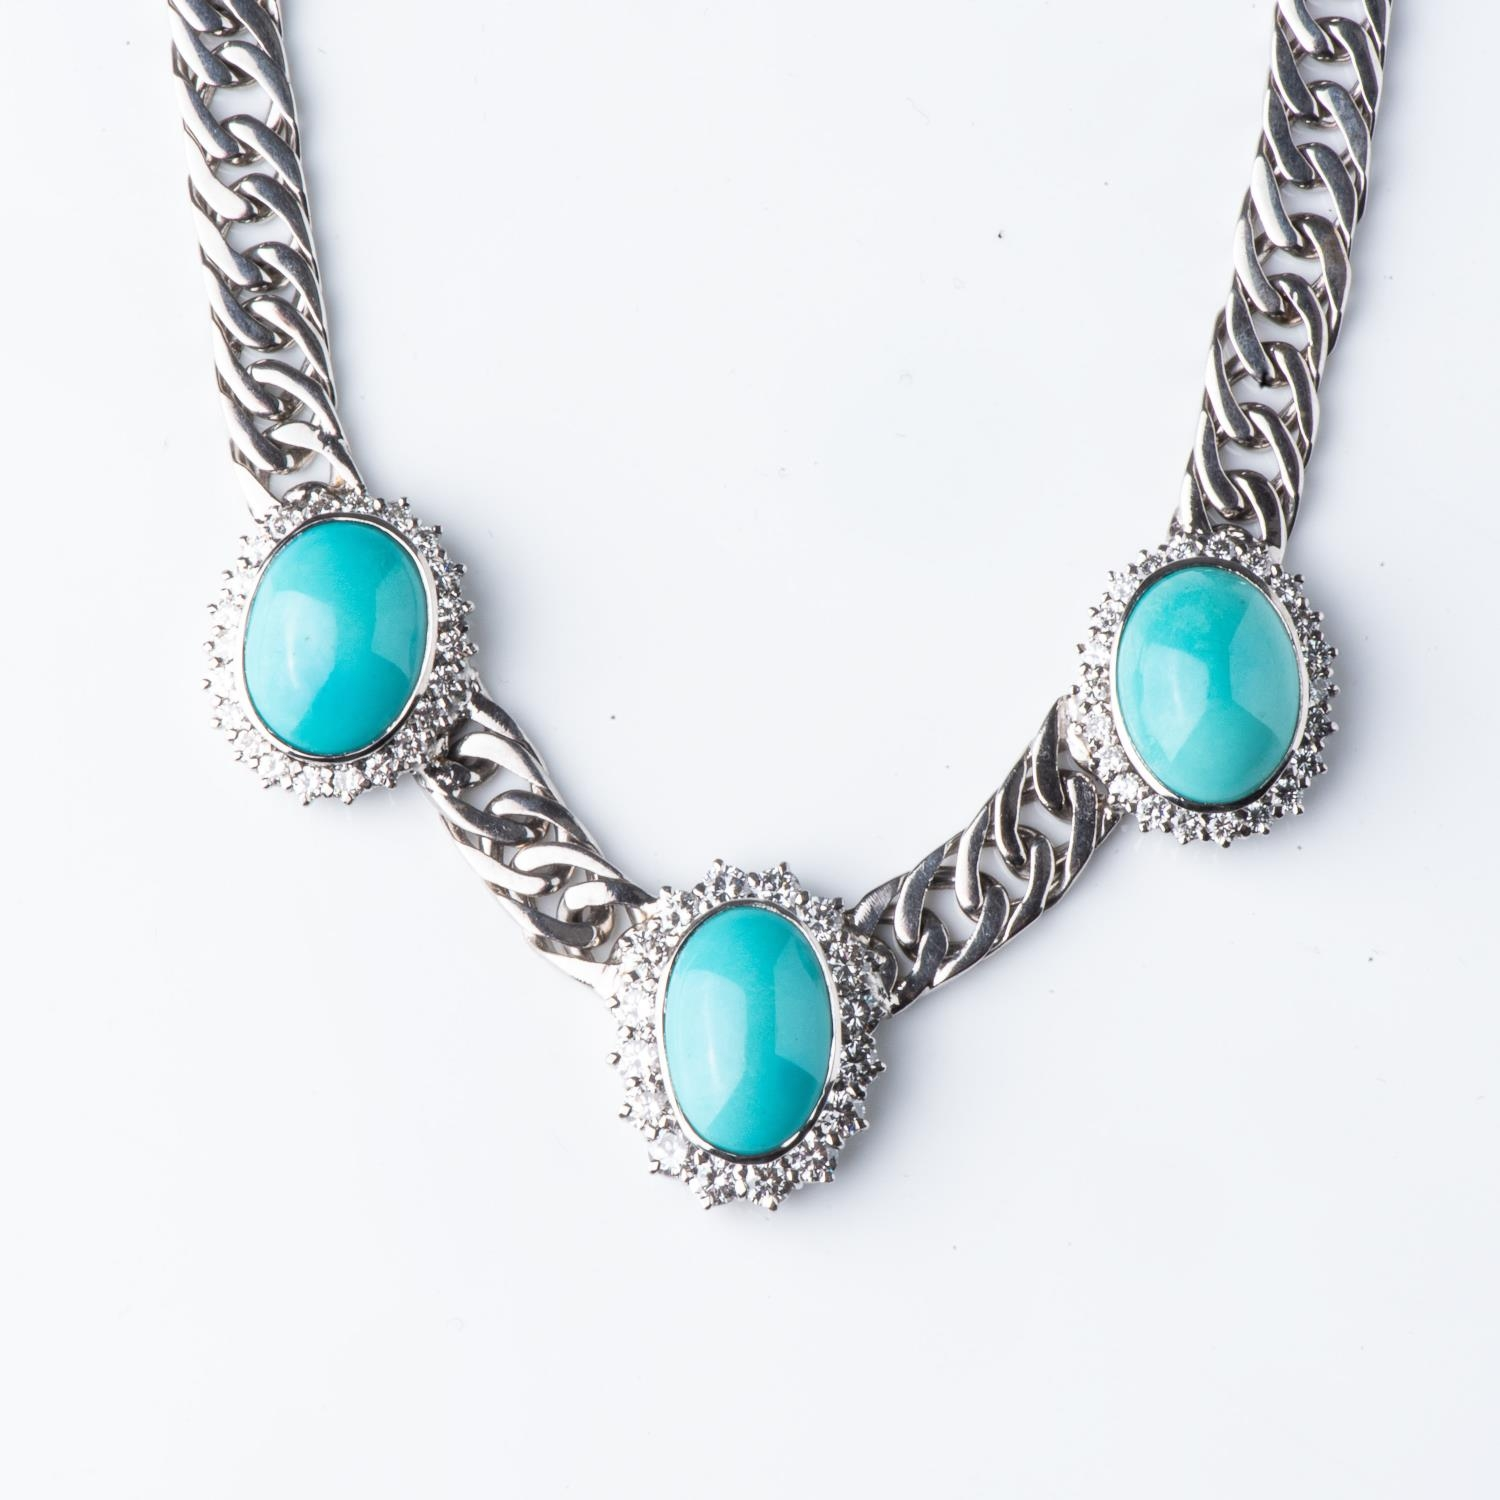 A DIAMOND AND TOURQUOISE NECKLACE - Image 2 of 2